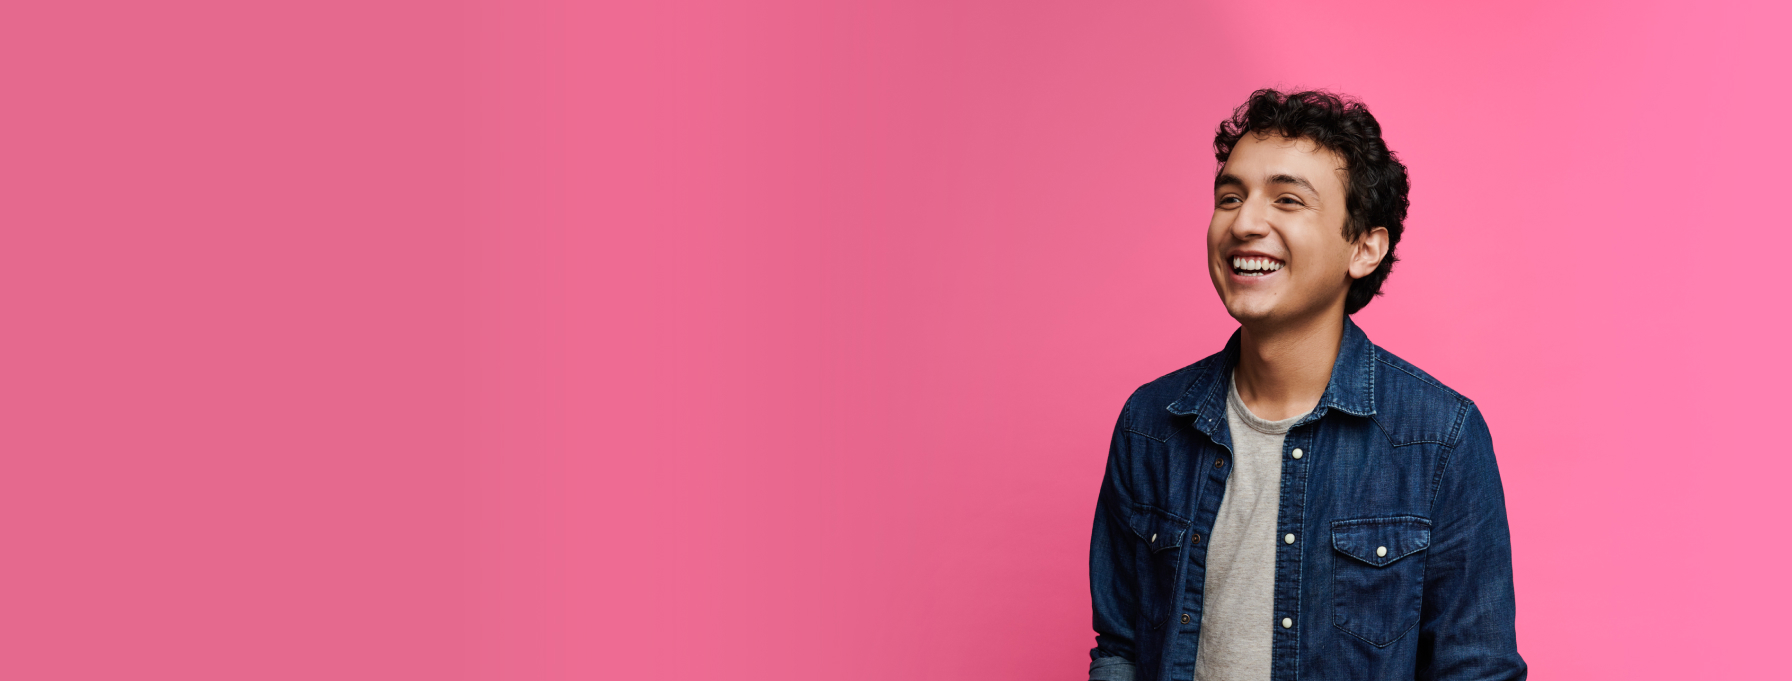 Smiling person on pink background.